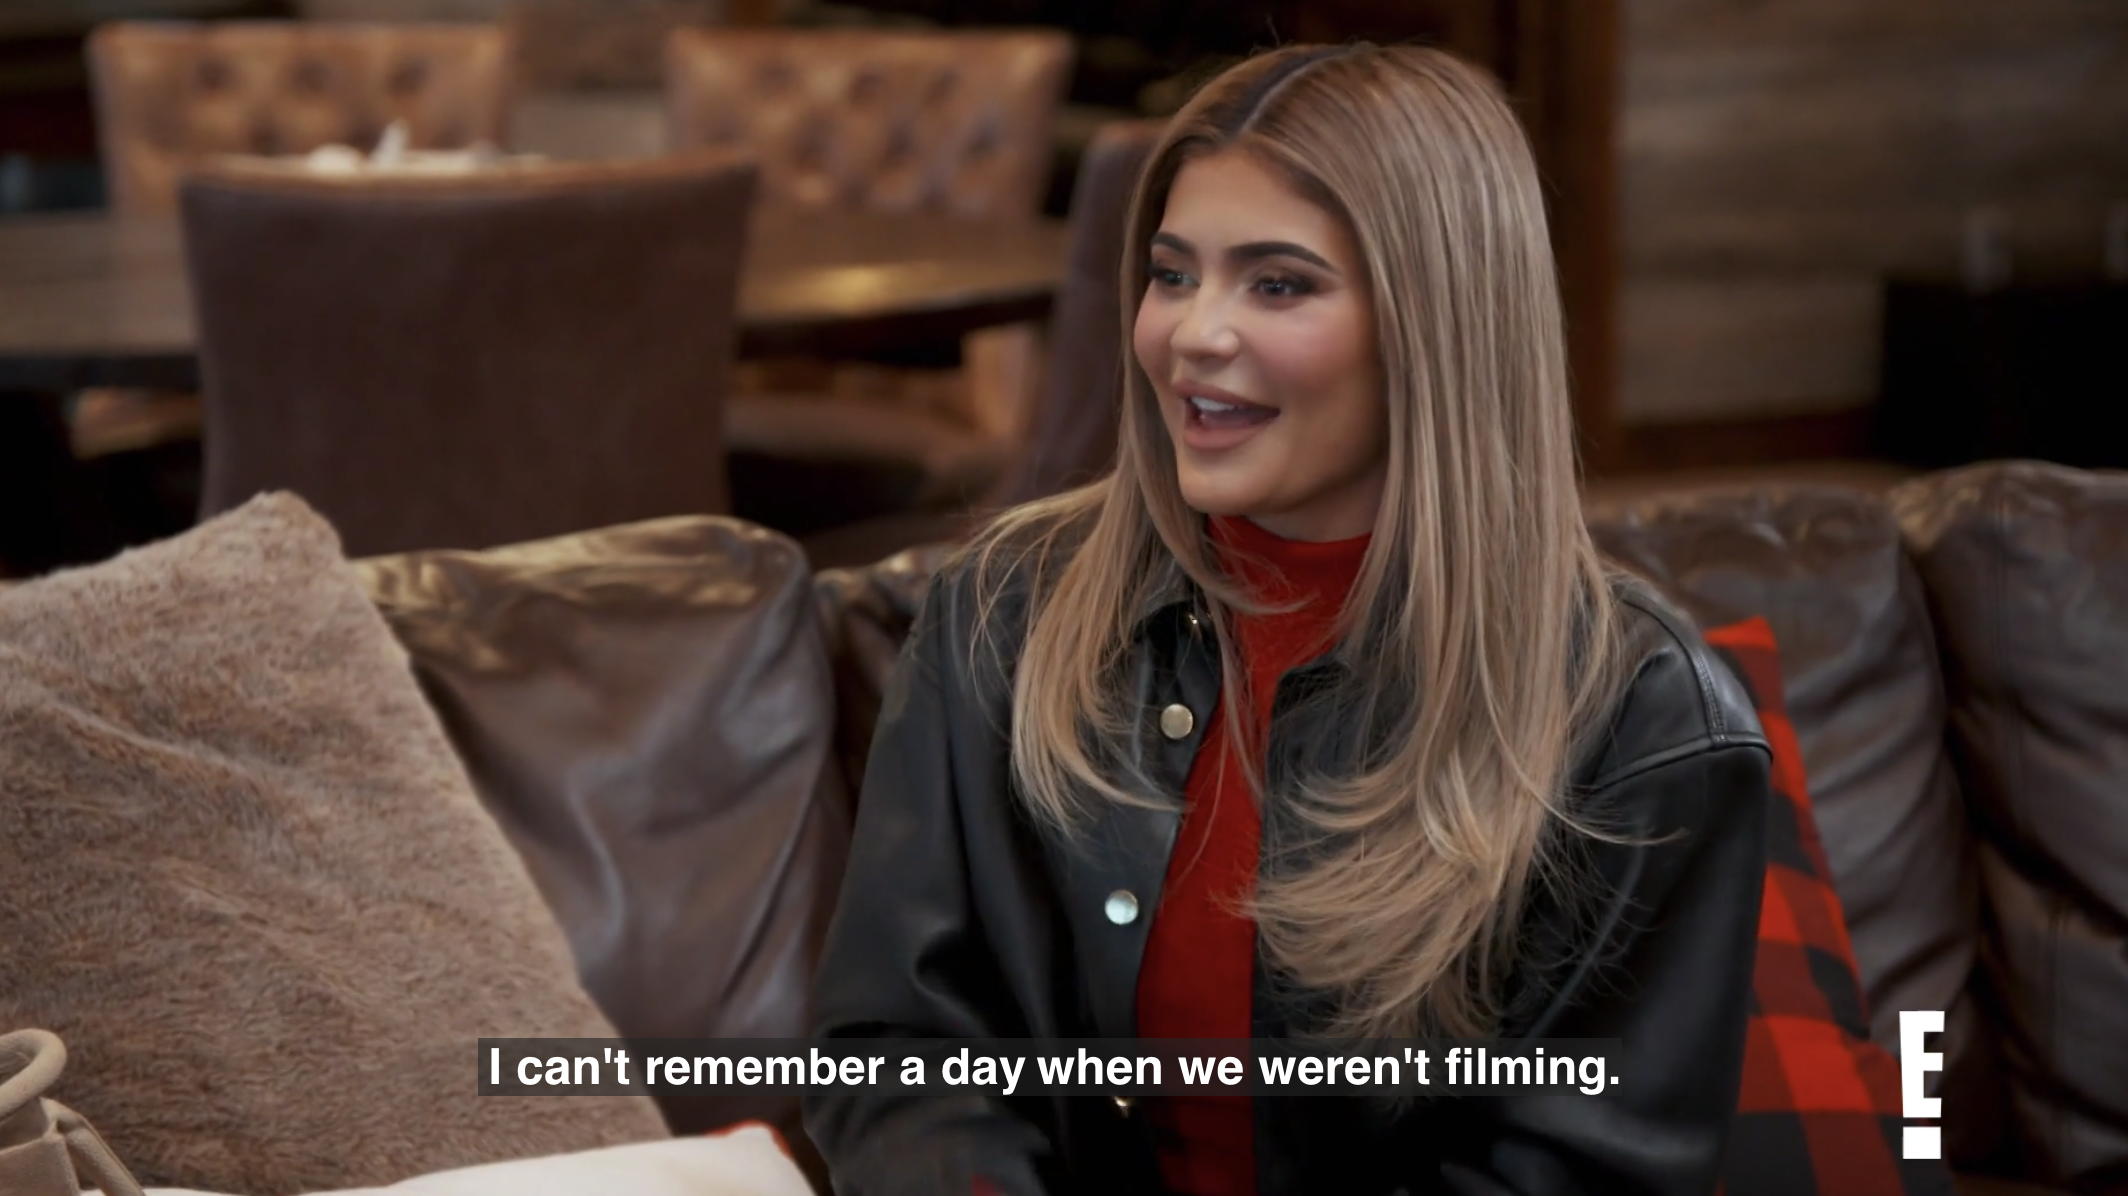 """Kylie: """"I can't remember a day when we weren't filming"""""""